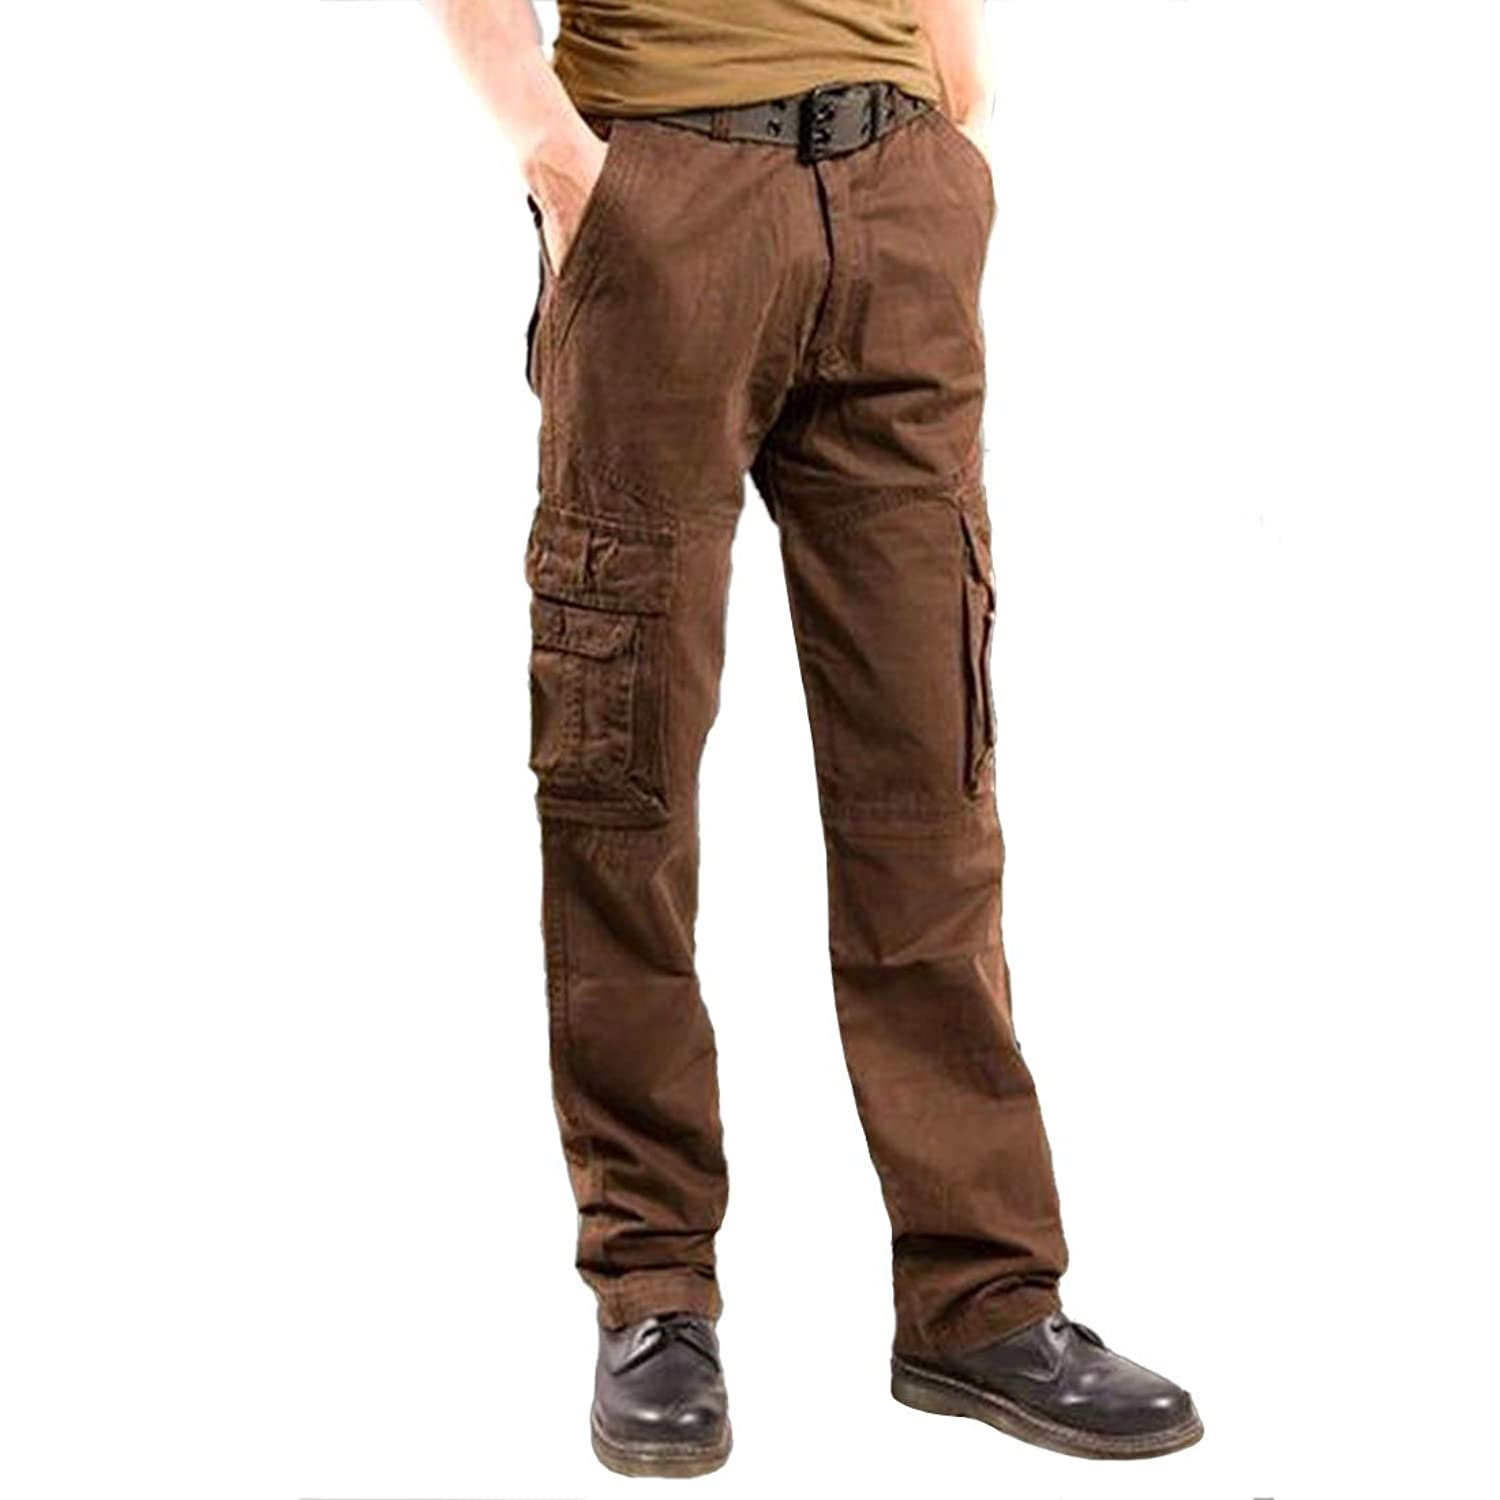 Attriactive Men Cotton Pockets Overalls Washable Outdoor Long Trousers Pants